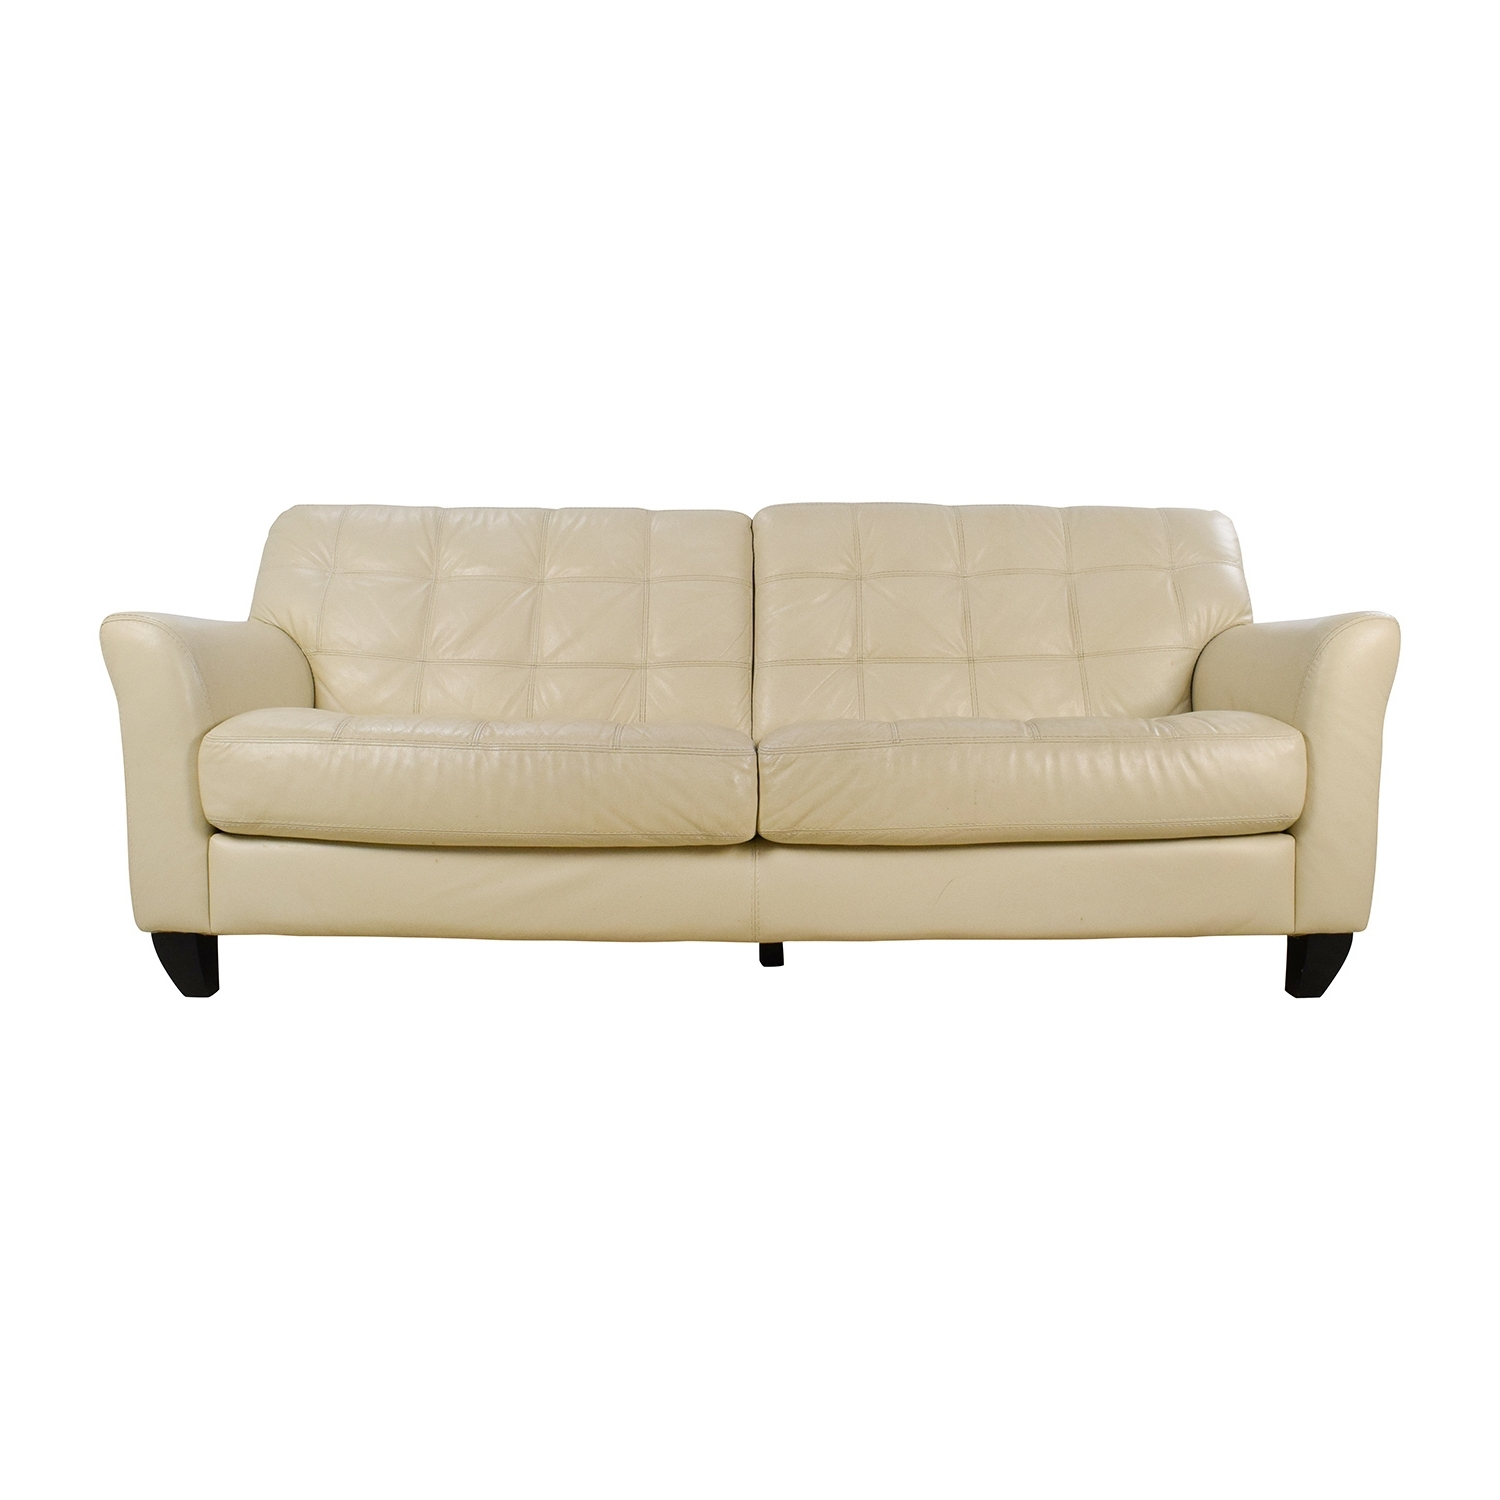 [%68% Off – Macy's Macy's Milan White Leather Couch / Sofas With Latest Off White Leather Sofas|Off White Leather Sofas Inside Trendy 68% Off – Macy's Macy's Milan White Leather Couch / Sofas|2019 Off White Leather Sofas Inside 68% Off – Macy's Macy's Milan White Leather Couch / Sofas|Famous 68% Off – Macy's Macy's Milan White Leather Couch / Sofas In Off White Leather Sofas%] (View 2 of 20)